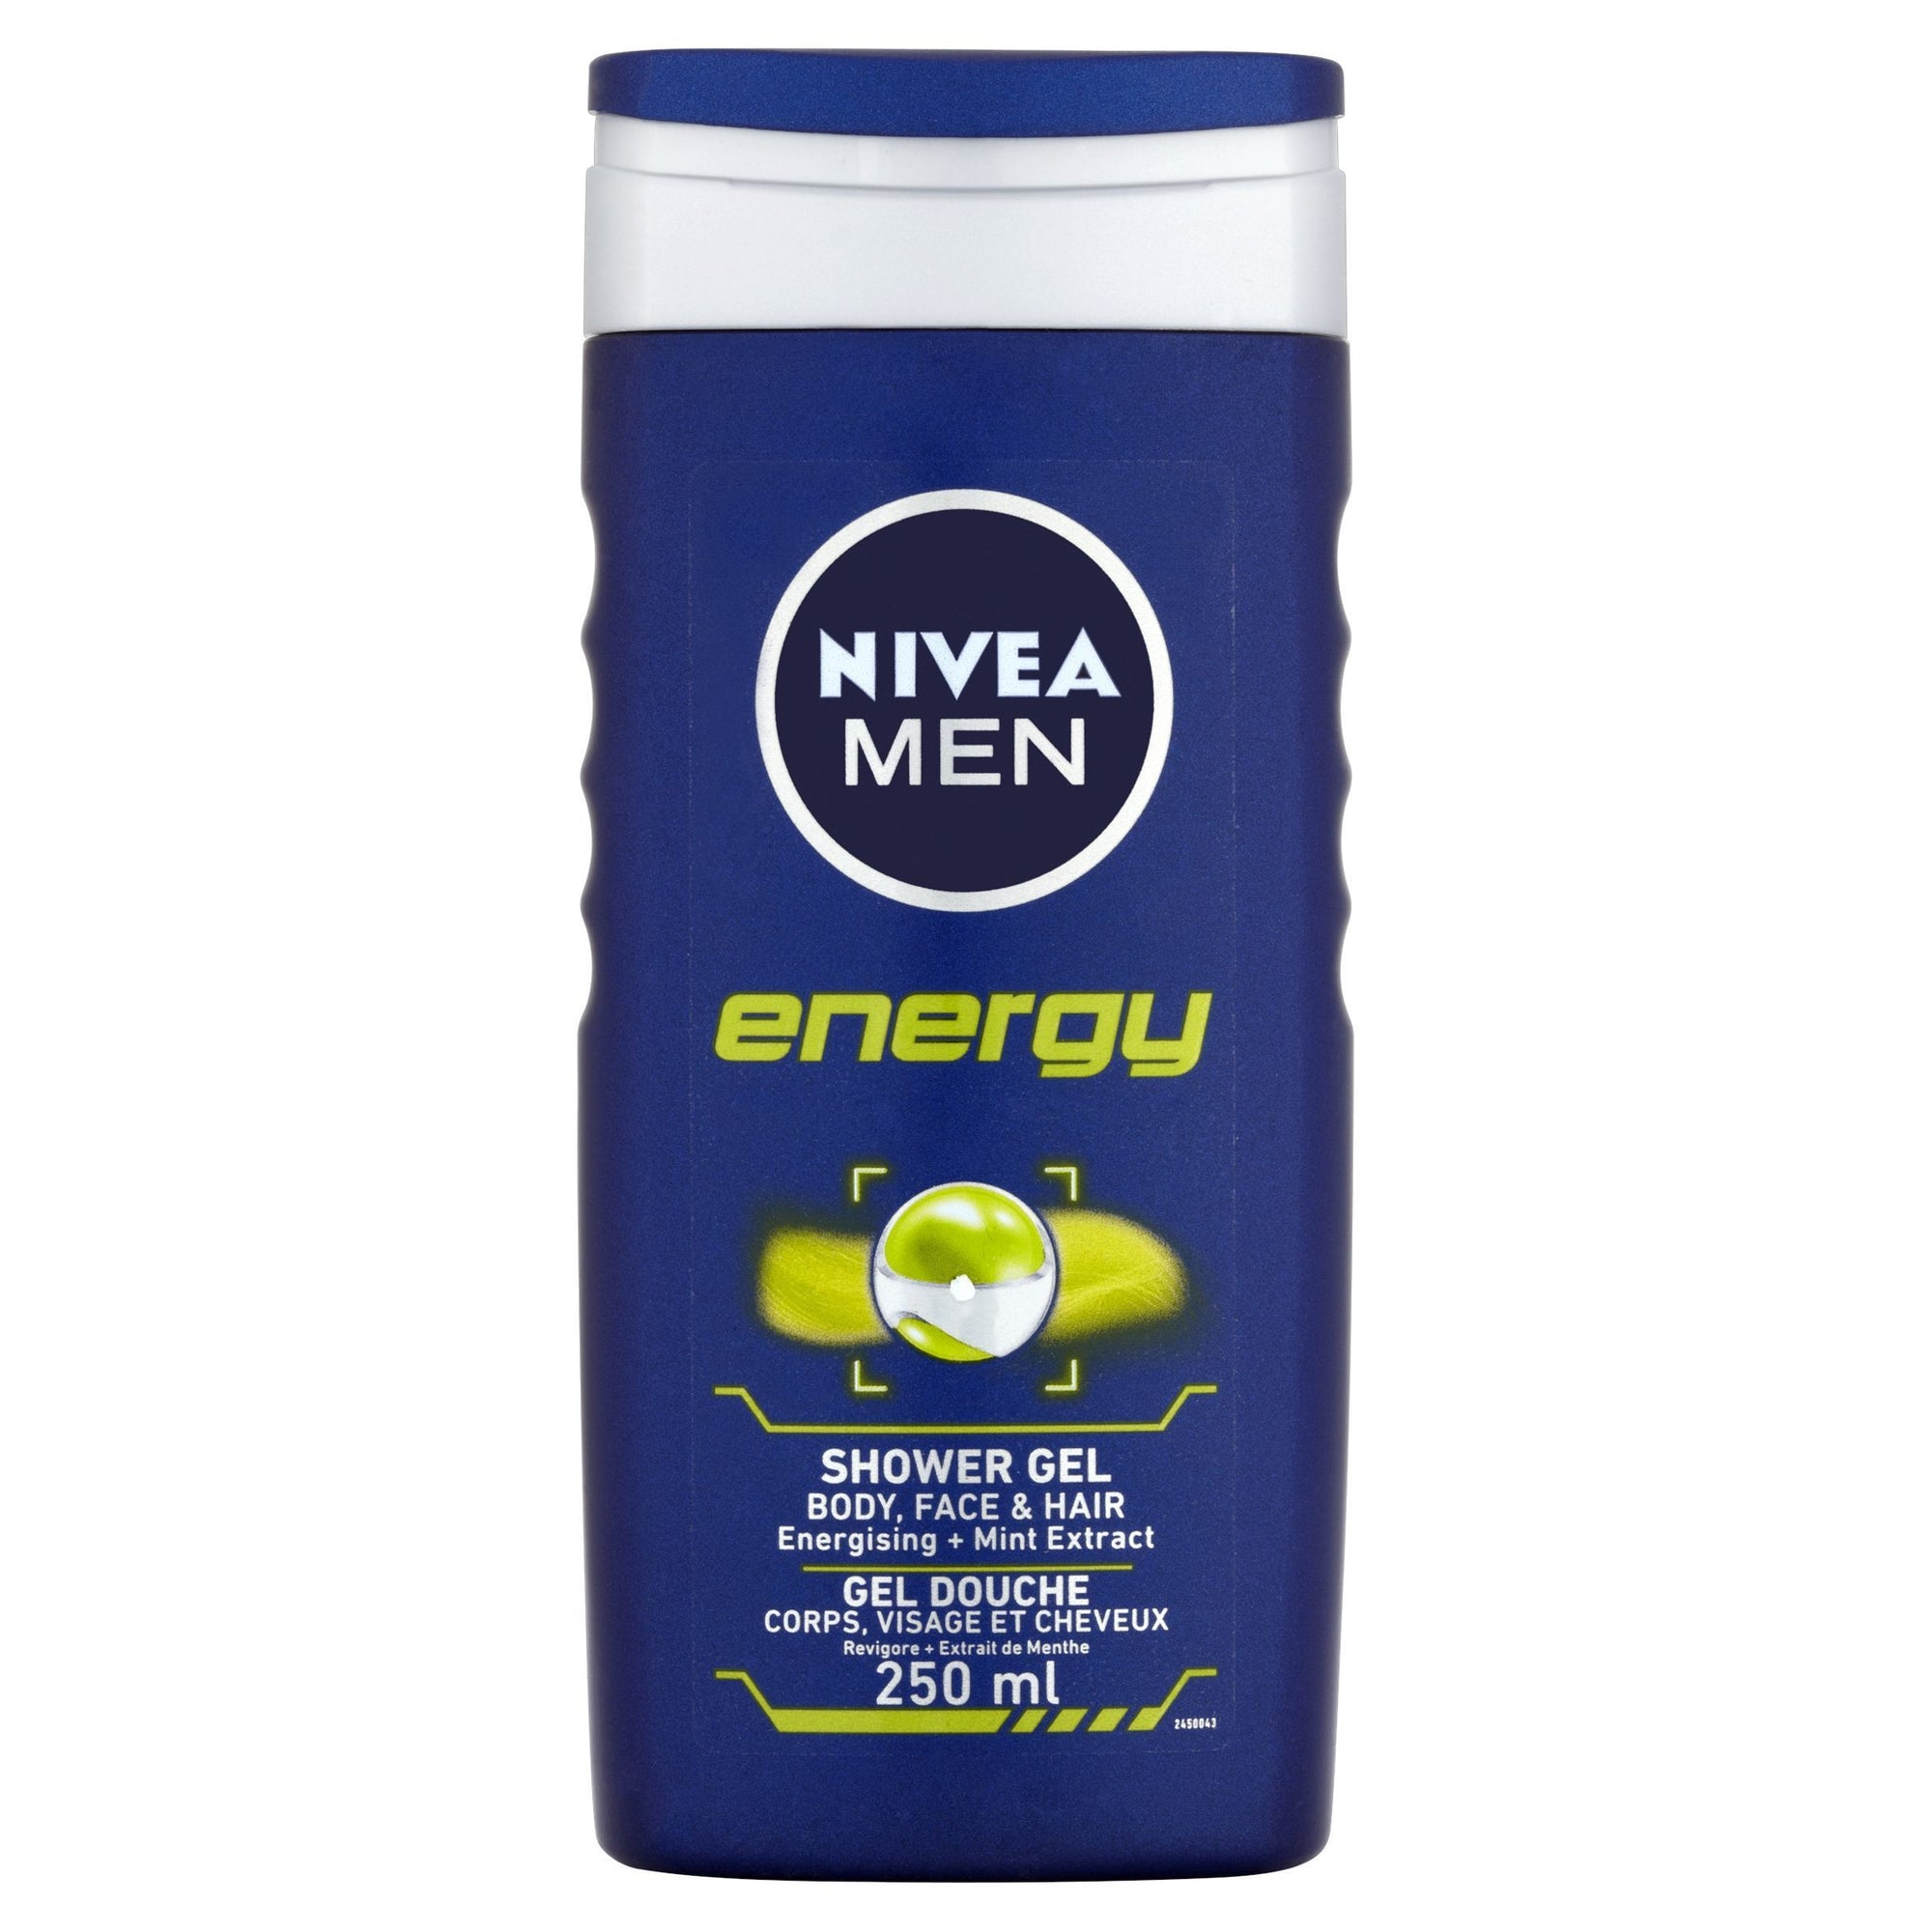 Nivea Men Energy Shower Gel 250ml - Pack of 6 (Sty-NIVE122BODY)